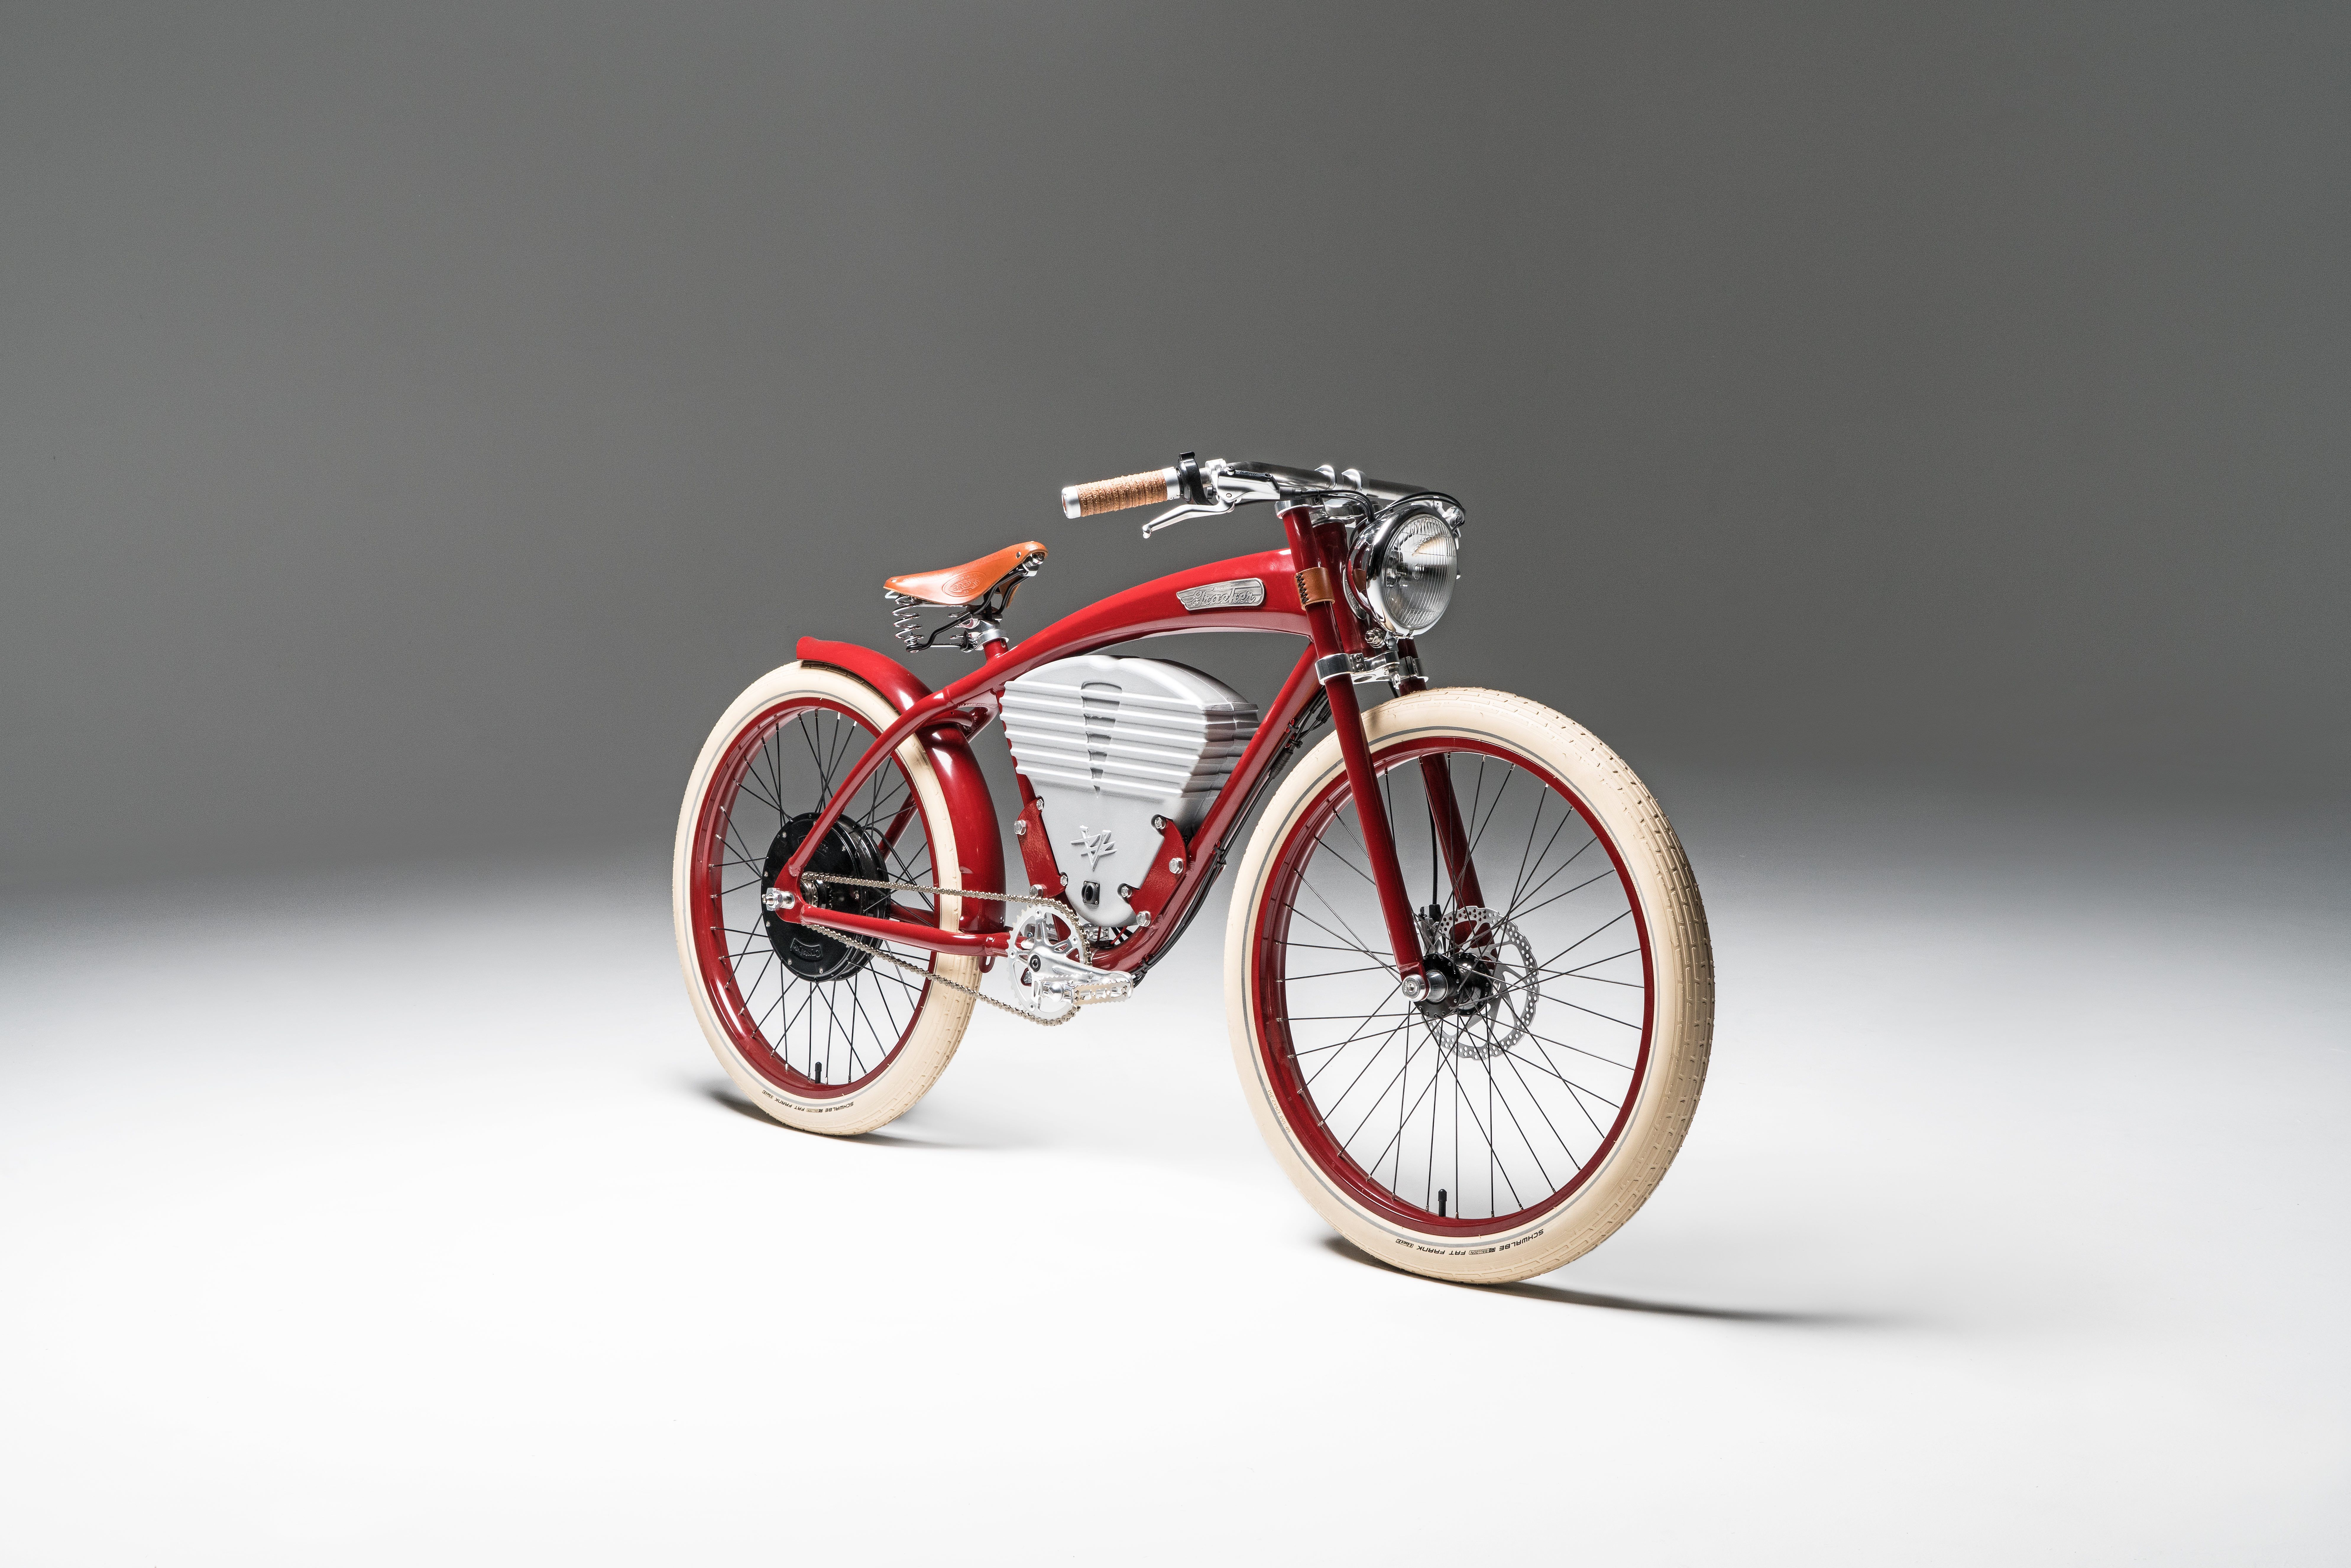 Capable Of 36 Mph It Is One Of The Fastest Electric Bikes On The Market Features A Beautiful Die Cast Aluminum Battery Box That Looks Great And